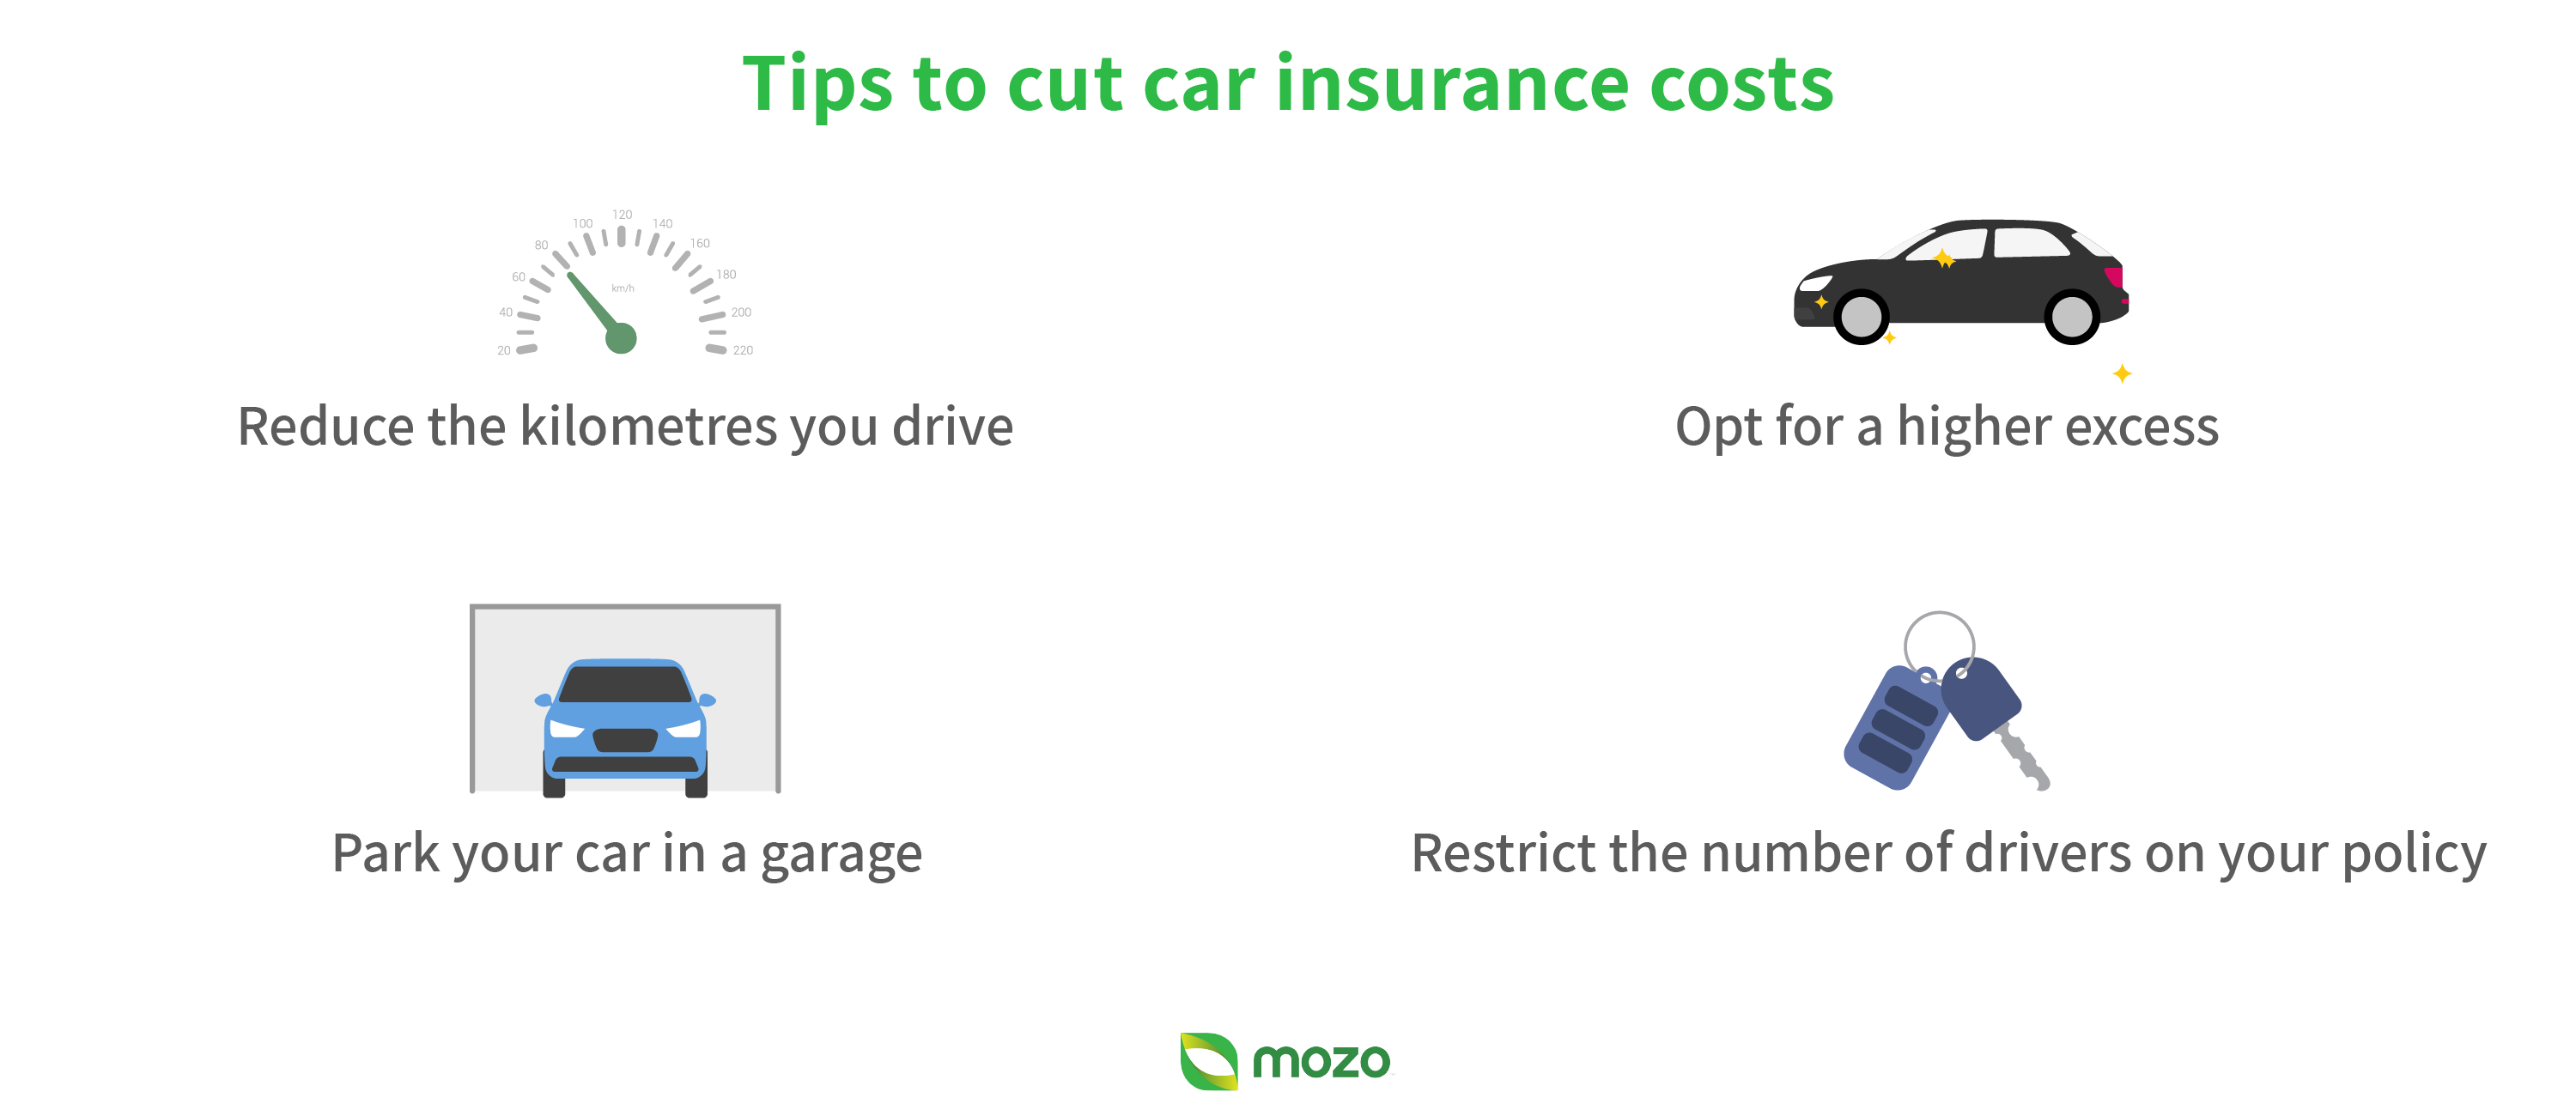 Graphic: Tips to cut car insurance costs